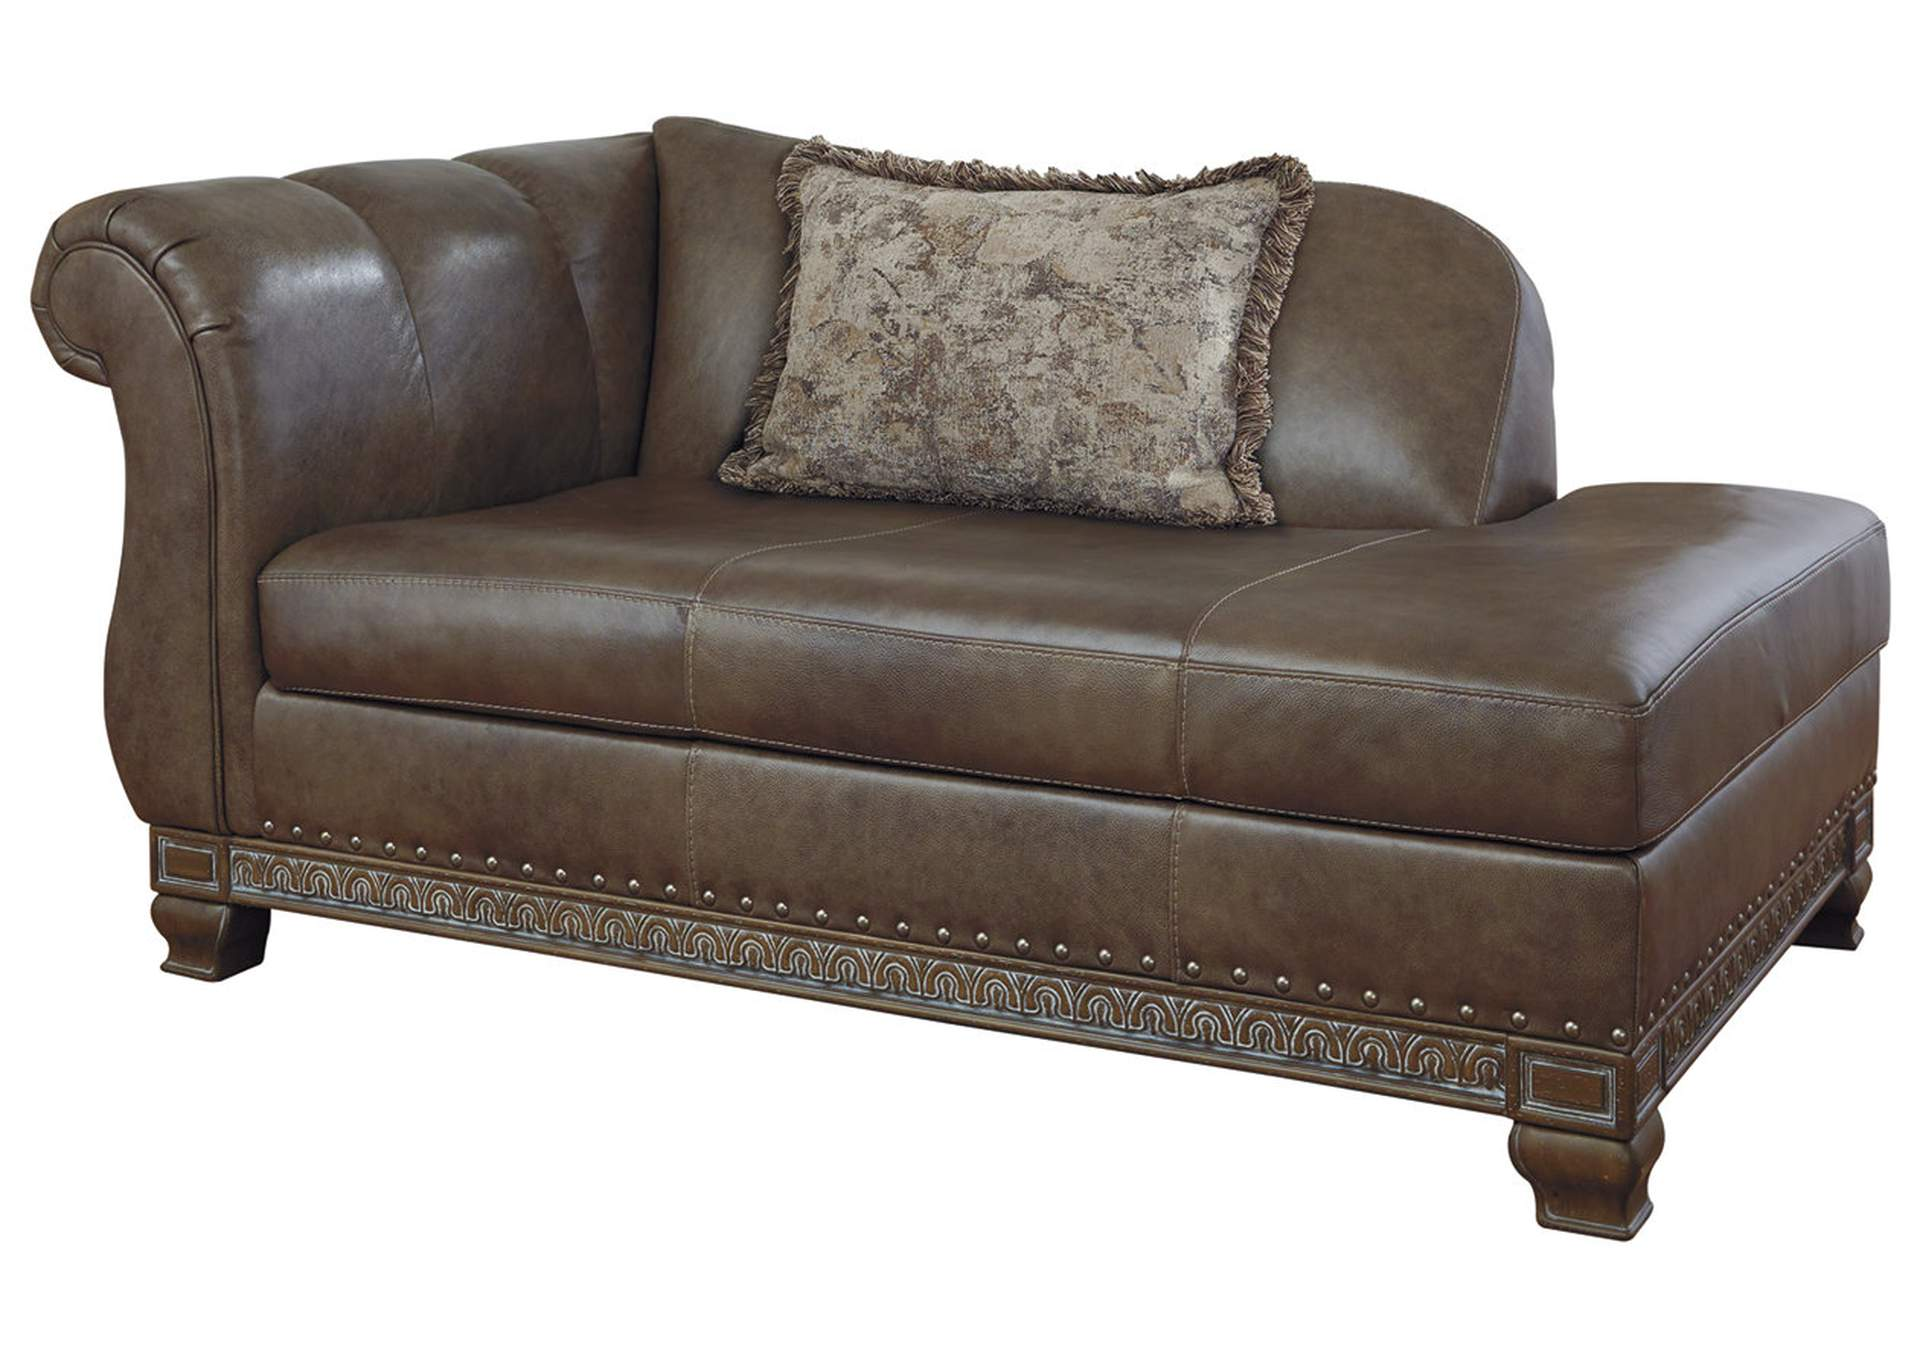 Malacara Left-Arm Facing Corner Chaise,Signature Design By Ashley